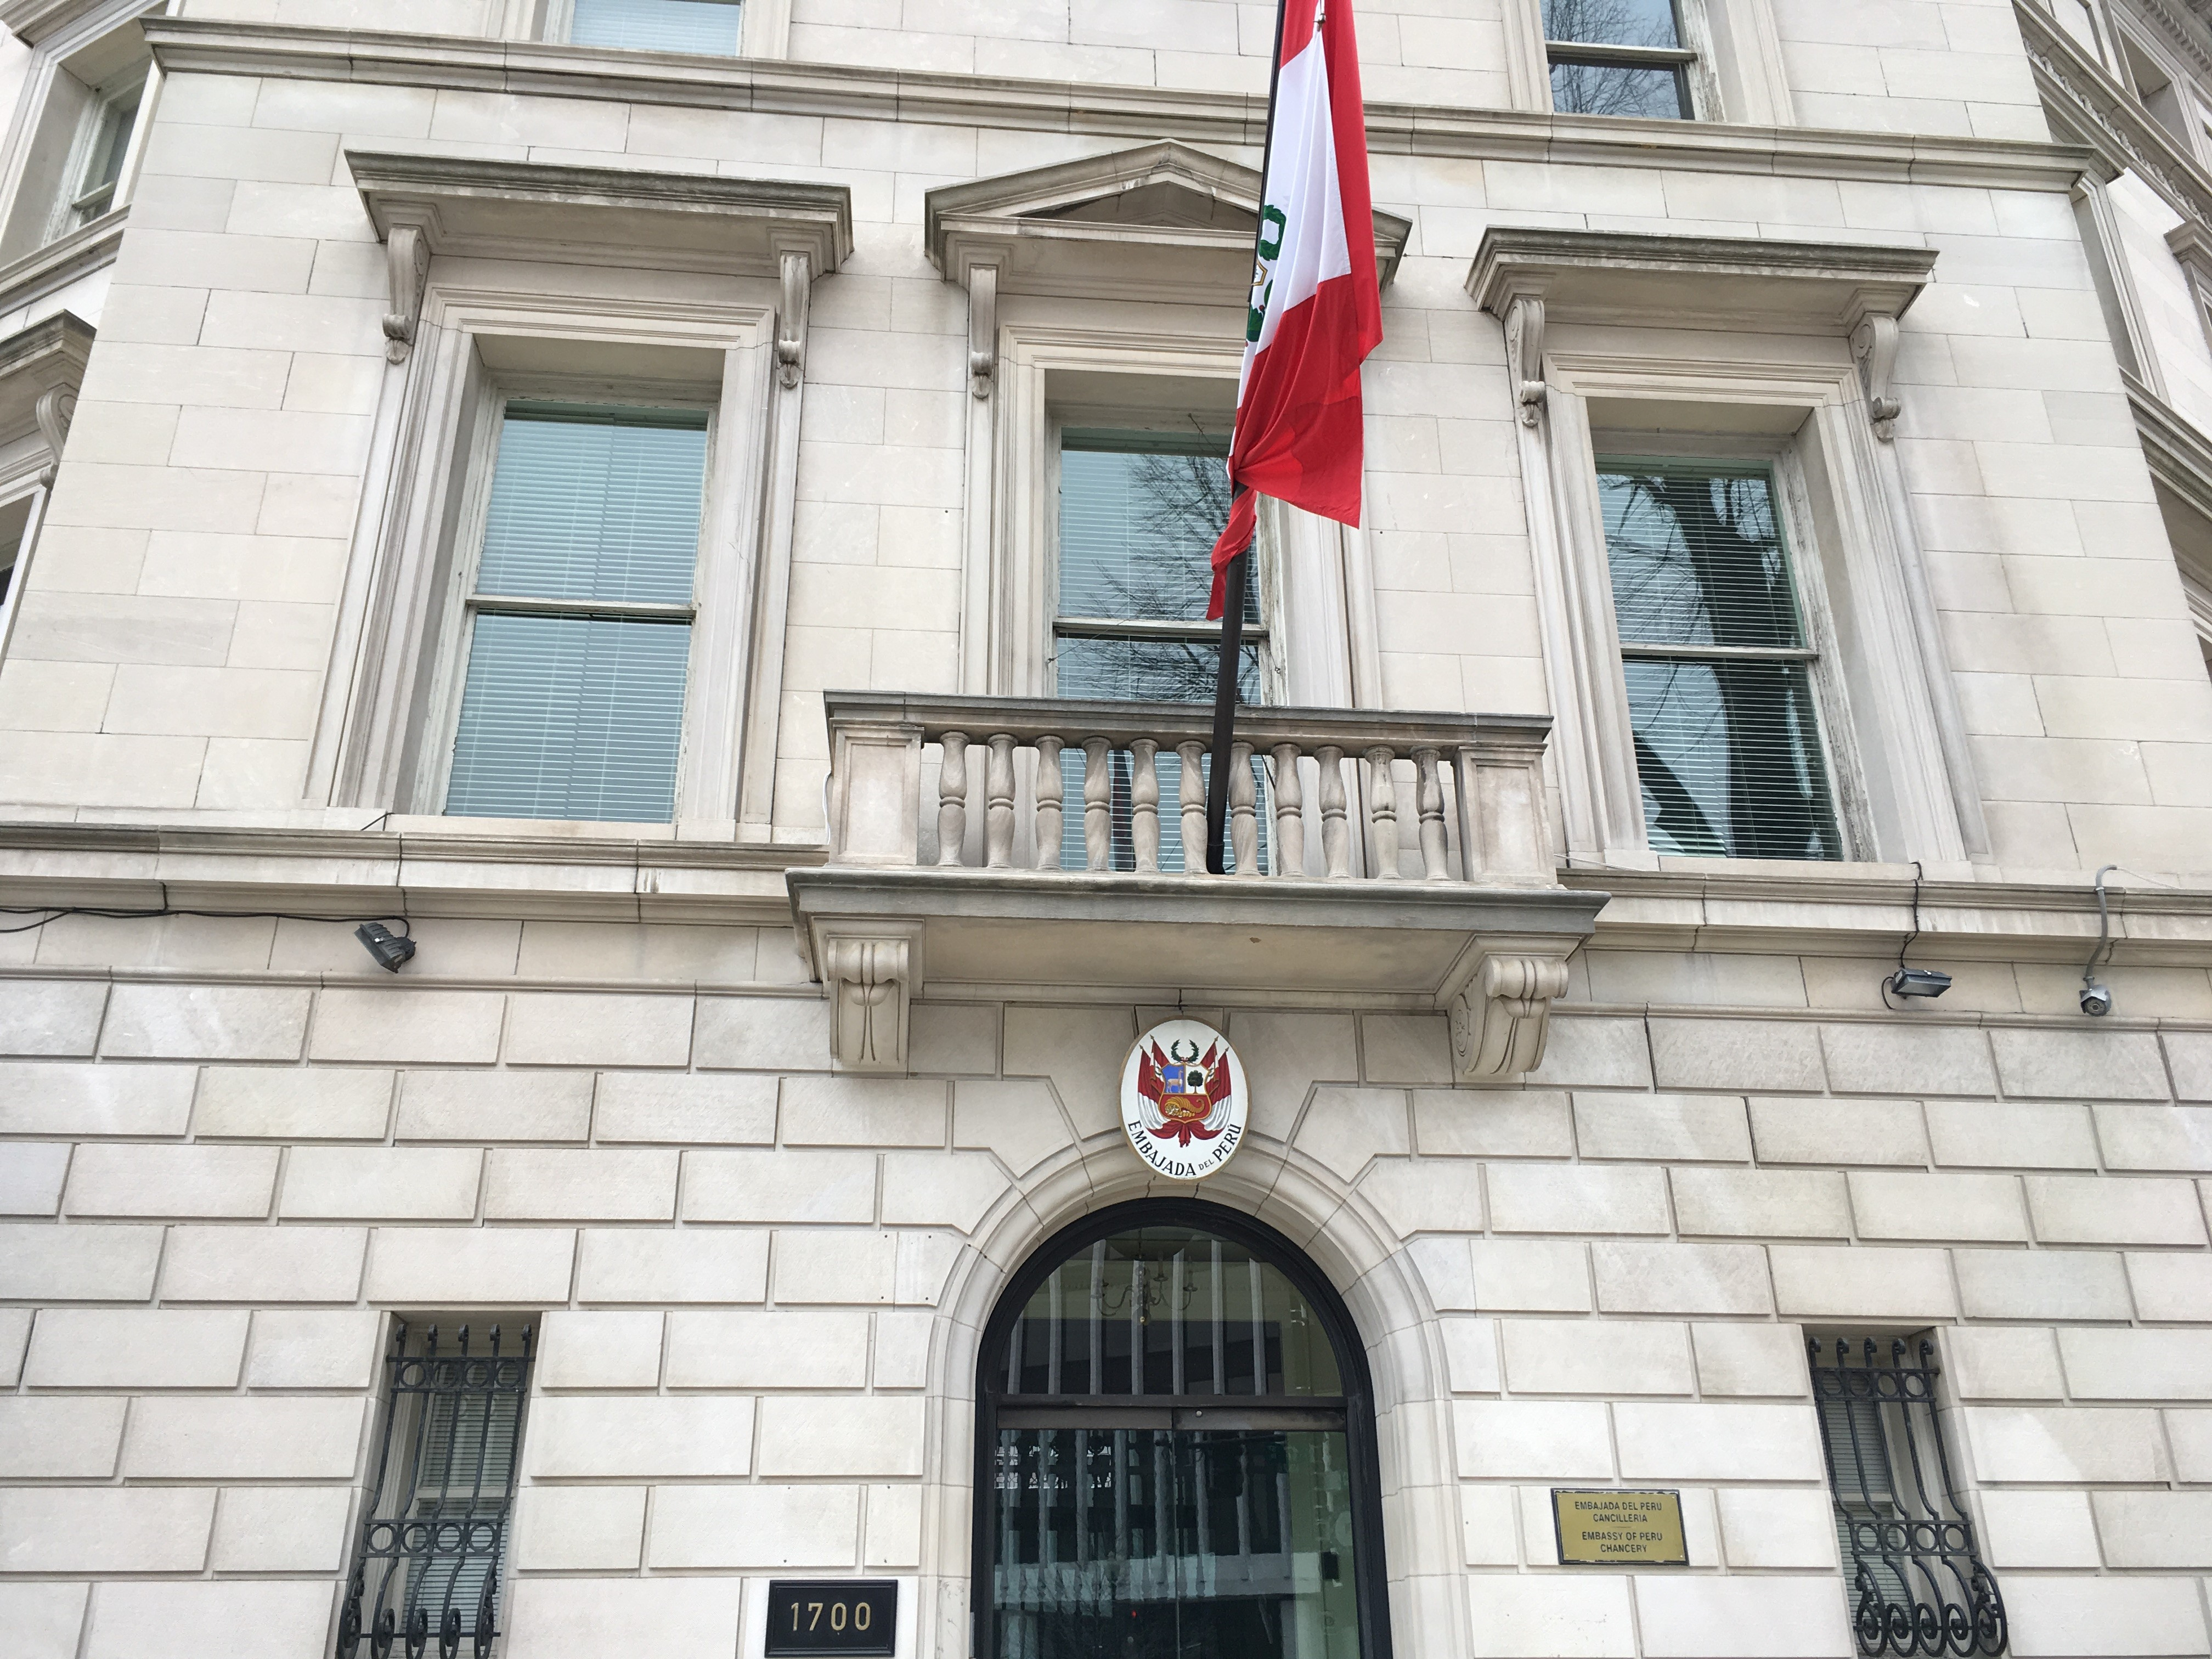 Real Estate & Homes For Sale Near The Embassy of Peru in Washington, DC. Artyom Shmatko Luxury Real Estate Agent